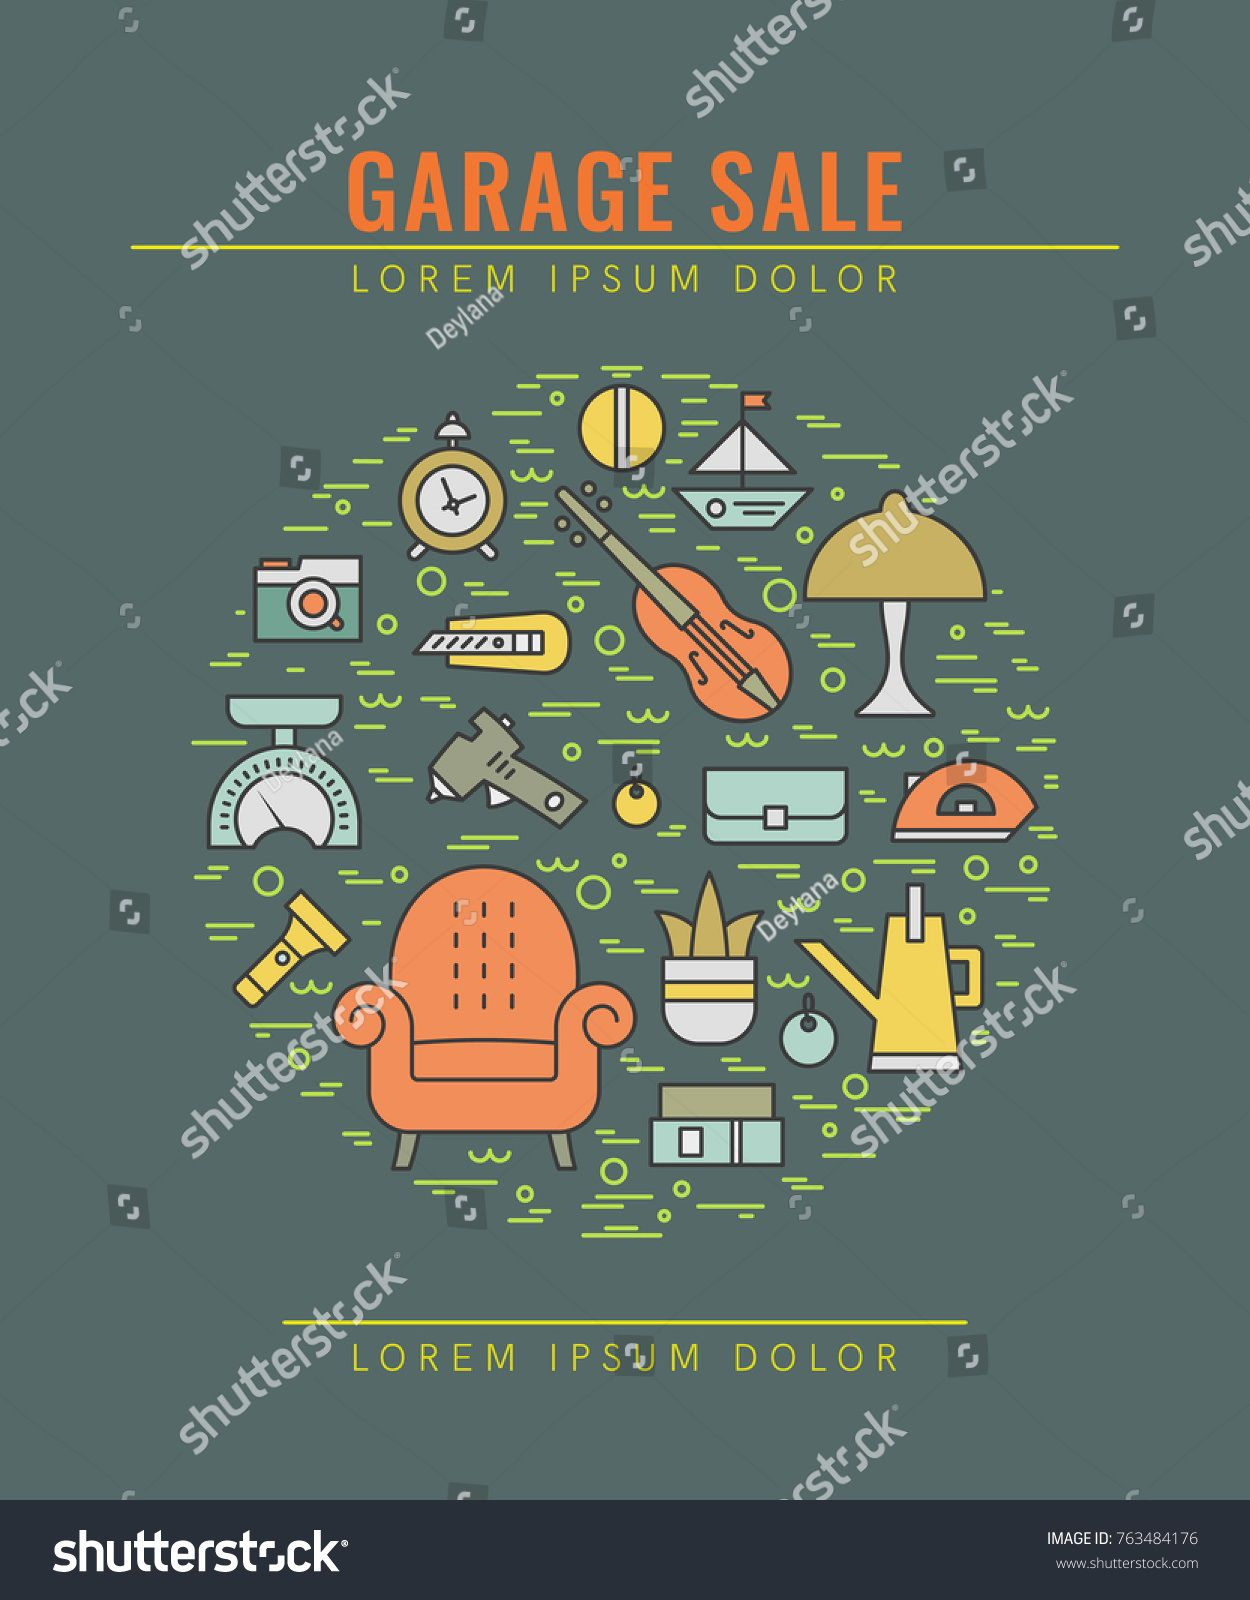 008 Impressive Yard Sale Flyer Template Concept  Free Garage Microsoft WordFull